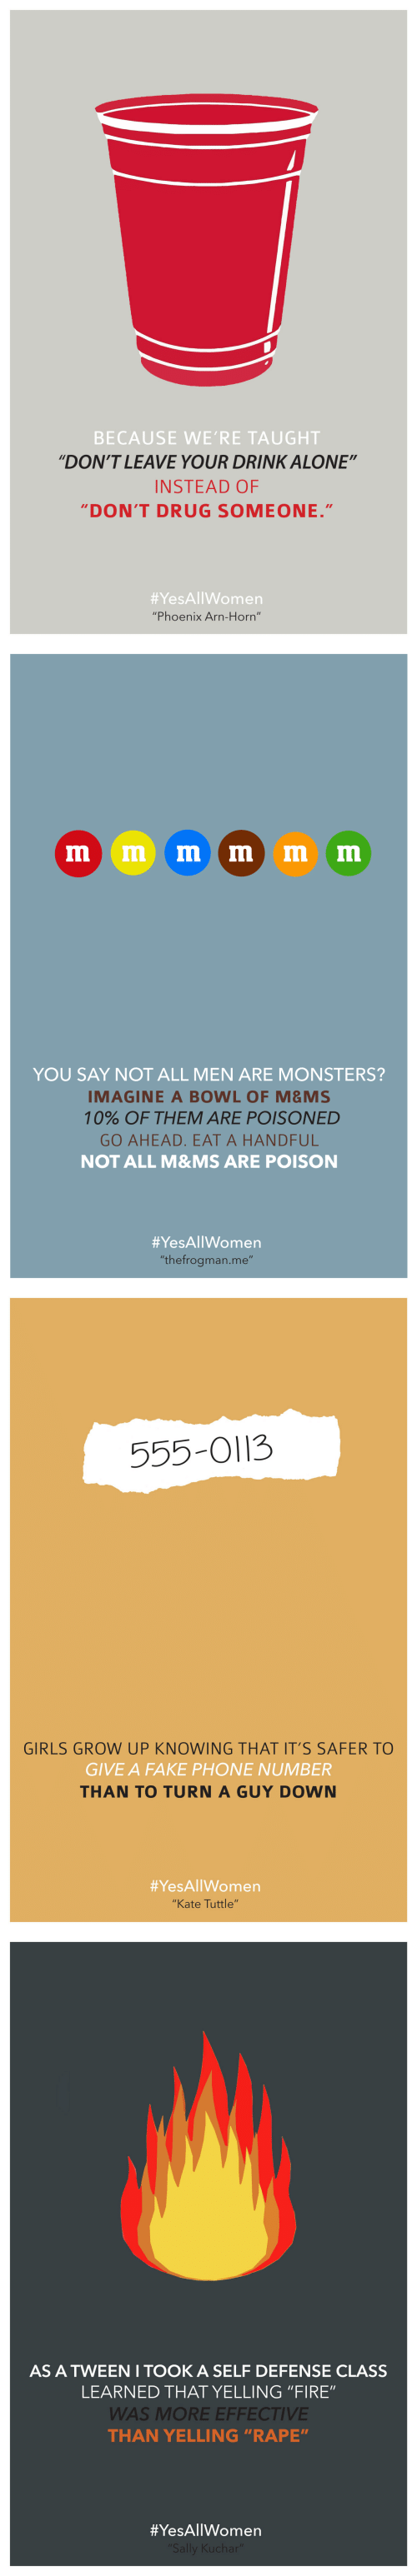 """M Ms: BECAUSE WE'RE TAUGHT  """"DON'T LEAVE YOUR DRINK ALONE""""  INSTEAD OF  DON'T DRUG SOMEONE.""""  #YesAllWomen  """"Phoenix Arn-Horn""""   YOU SAY NOT ALL MEN ARE MONSTERS?  IMAGINE A BOWL OF M&MS  10% OF THEM ARE POISONED  GO AHEAD. EAT A HANDFUL  NOT ALL M&MS ARE POISON  #YesAllWomen  """"thefrogman.me""""   555-O113  GIRLS GROW UP KNOWING THAT IT'S SAFER TO  GIVE A FAKE PHONE NUMBER  THAN TO TURN A GUY DOWN  #YesAllWomen  """"Kate Tuttle""""   AS A TWEEN I TOOK A SELF DEFENSE CLASS  LEARNED THAT YELLING """"FIRE""""  WAS MORE EFFECTIVE  THAN YELLING """"RAPE"""""""